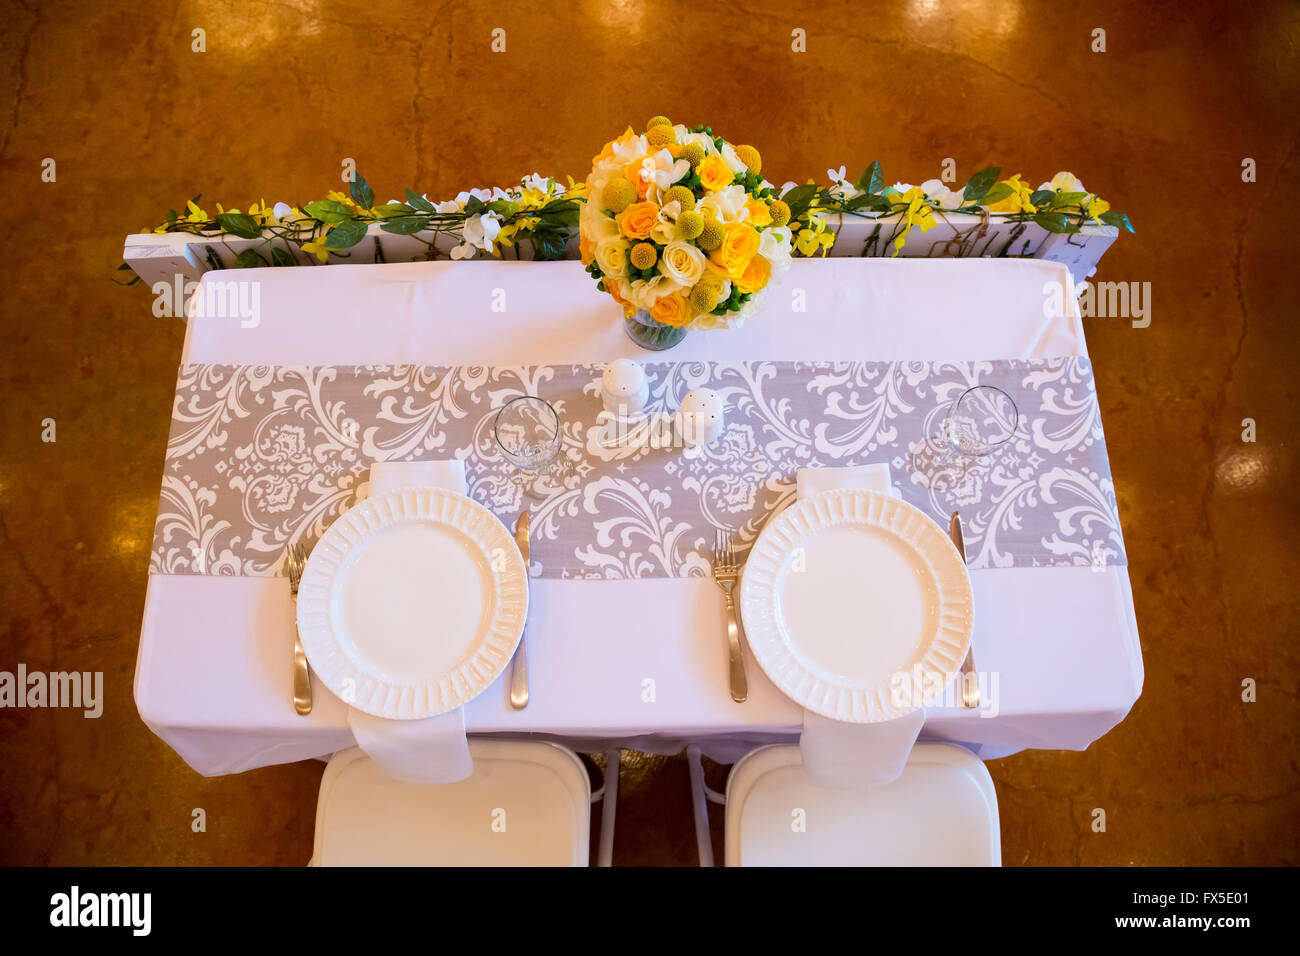 Delightful Wedding Reception Table Setting For The Bride And Groom.